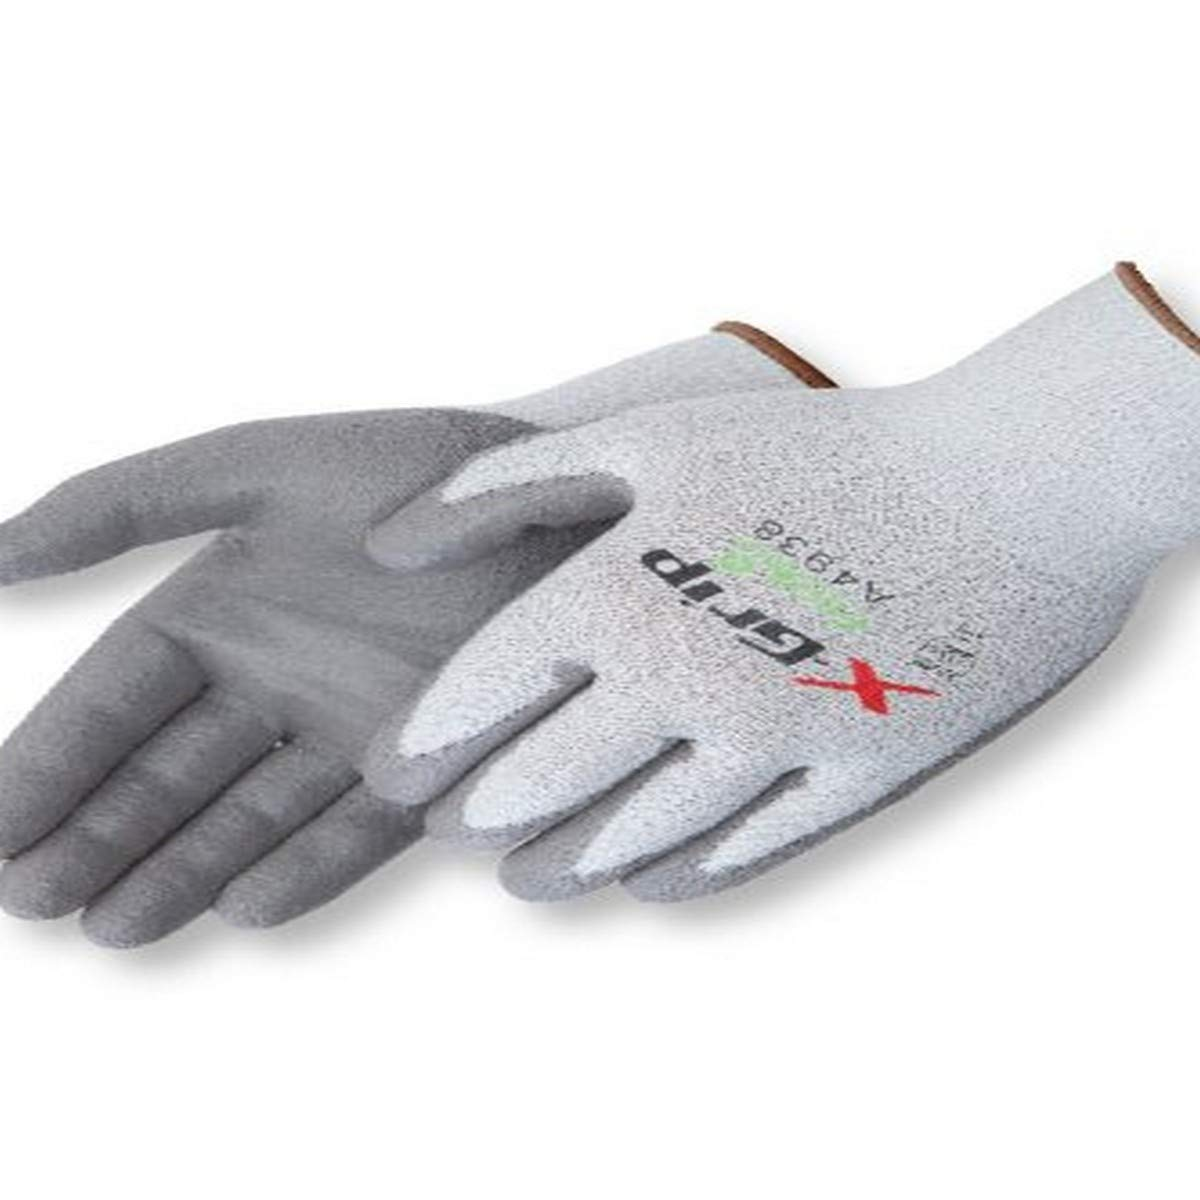 Liberty X-Grip Polyurethane Palm Coated Glove with 13-Gauge Wooltran Polyester Shell, Cut Resistant, Large, Gray (Pack of 12)